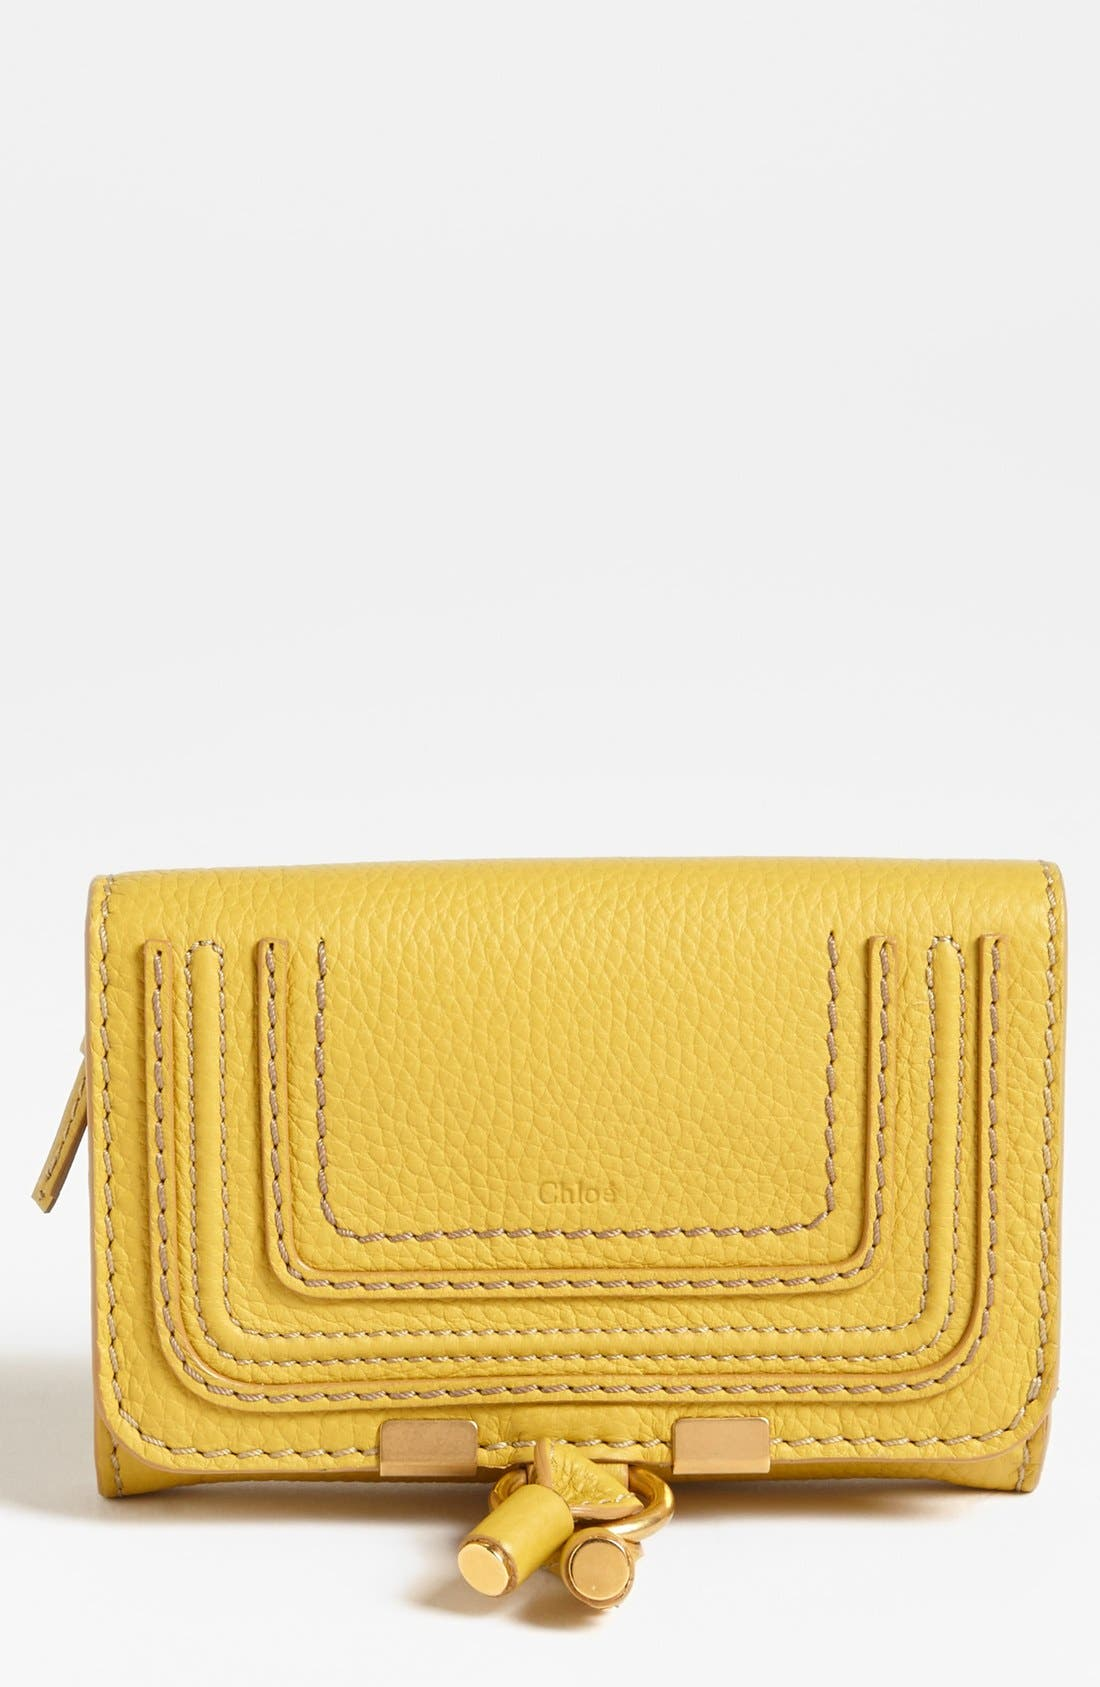 Main Image - Chloé 'Marcie' Leather Wallet